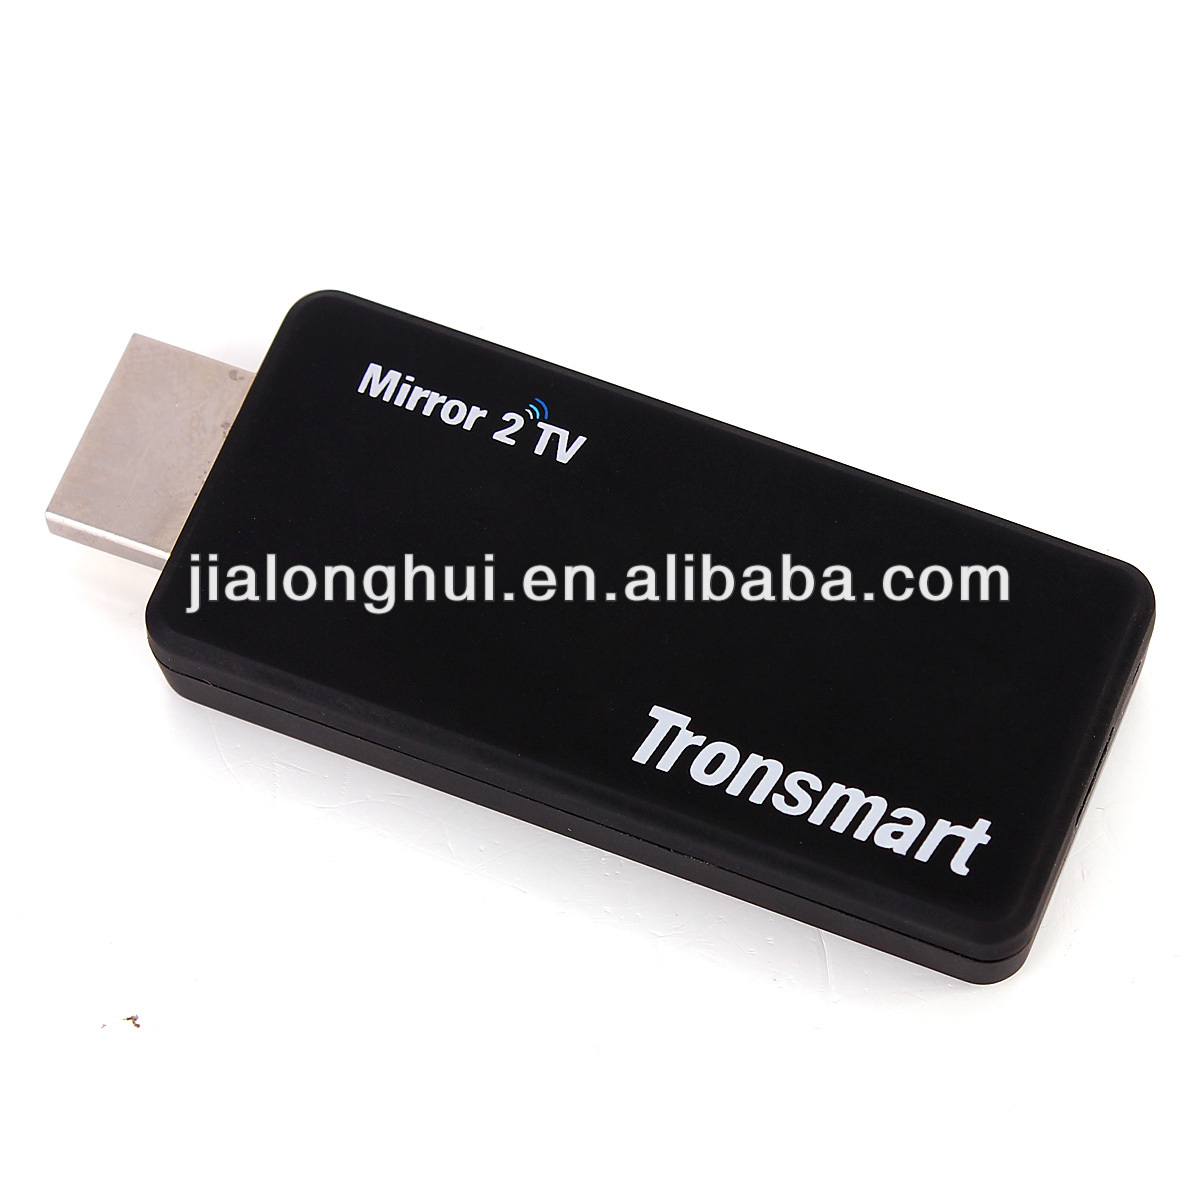 Tronsmart T1000 Miracast <strong>Dongle</strong> Better than Google Chromecast HDMI Wireless Display DLNA Ezcast Mirror2TV IPTV Android <strong>TV</strong> <strong>Stick</strong>